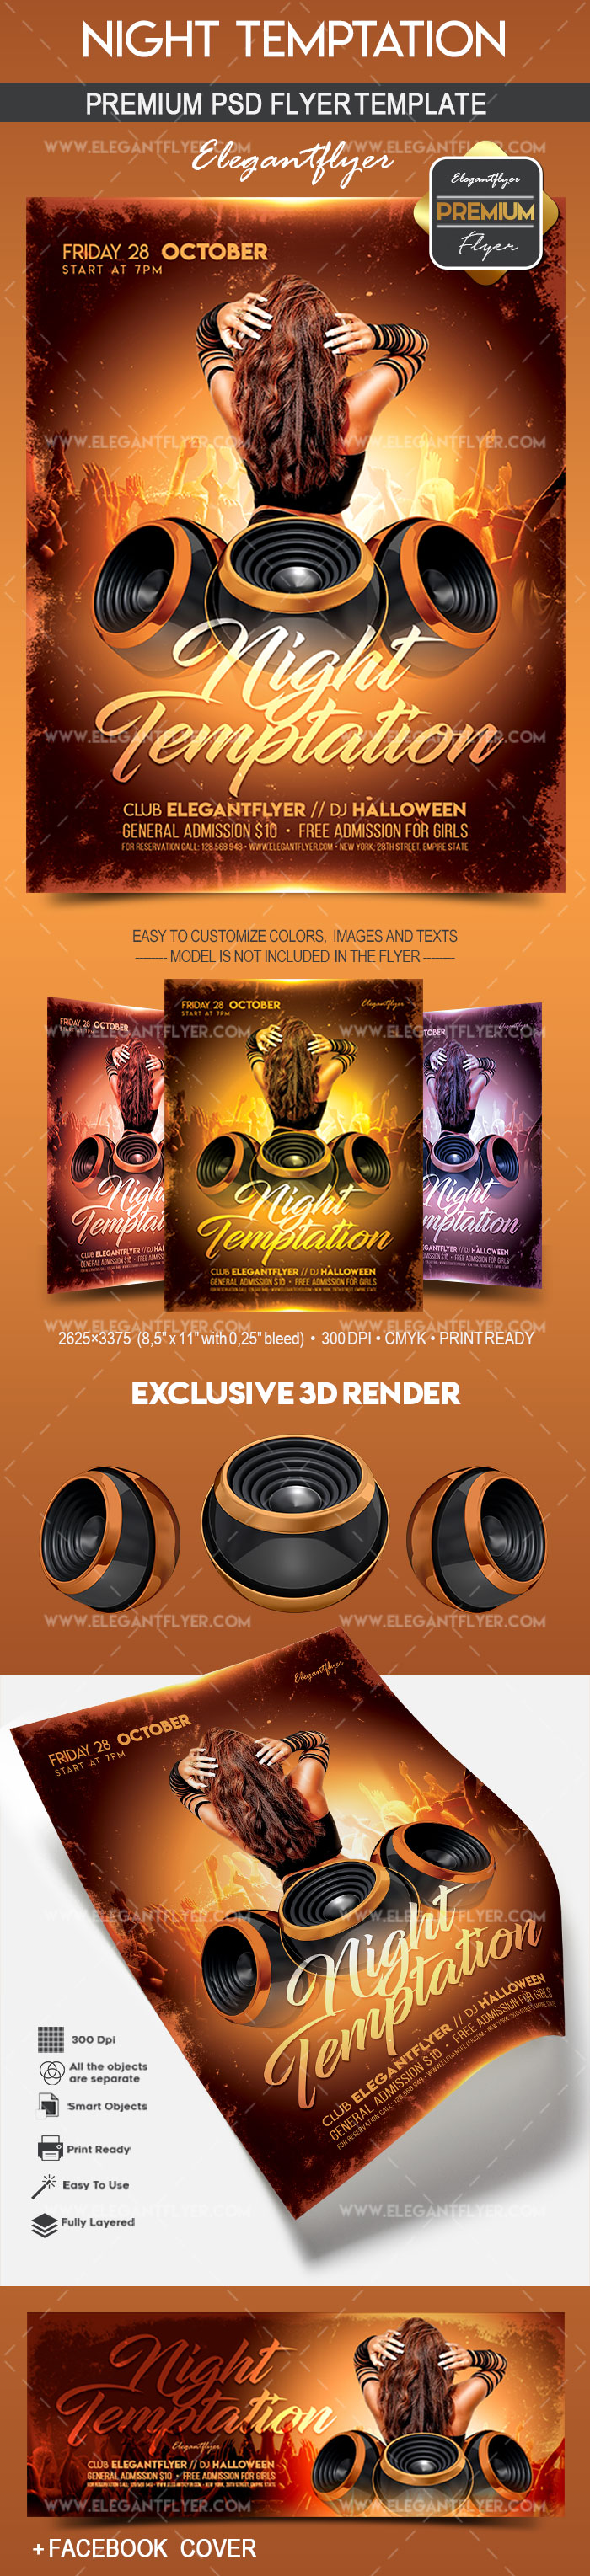 Night Temptation – Flyer PSD Template